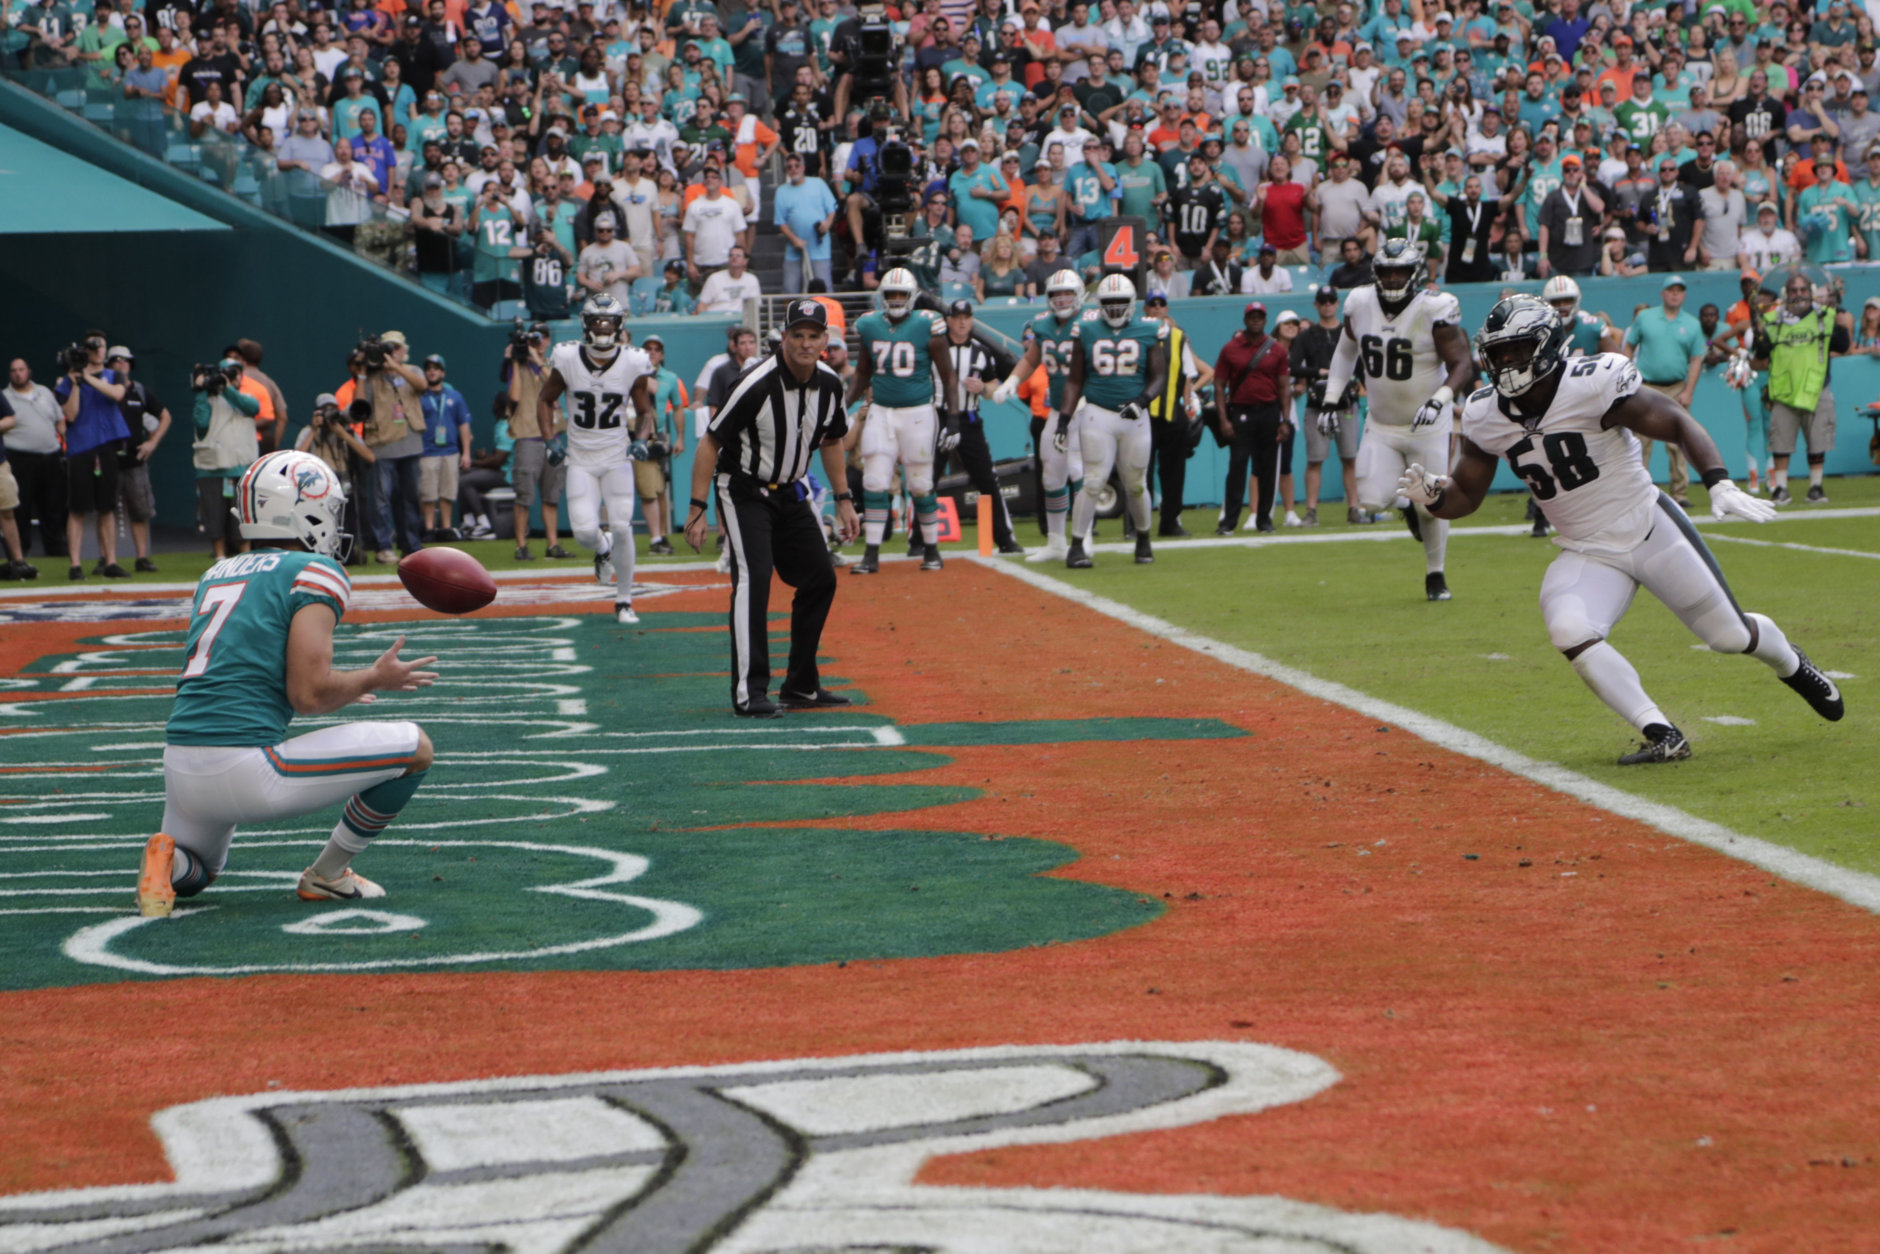 """<p><b><i>Eagles 31</i></b><br /> <b><i>Dolphins 37</i></b></p> <p>Look, Dallas can&#8217;t get out of its own way either but if Philadelphia can&#8217;t beat the hapless Dolphins in December (they gave up <a href=""""https://twitter.com/ESPNStatsInfo/status/1201229068148105216?s=20"""" target=""""_blank"""" rel=""""noopener"""">the first touchdown to a kicker in 42 years</a>!), it&#8217;s hard to see them catching the Cowboys with <a href=""""https://twitter.com/ESPNStatsInfo/status/1201256099443290113?s=20"""" target=""""_blank"""" rel=""""noopener"""" data-saferedirecturl=""""https://www.google.com/url?q=https://twitter.com/ESPNStatsInfo/status/1201256099443290113?s%3D20&amp;source=gmail&amp;ust=1575342523390000&amp;usg=AFQjCNGMZiL2YK-oOvS-mcZuegvCG3LY9g"""">this awful fourth-quarter track record</a>.</p>"""